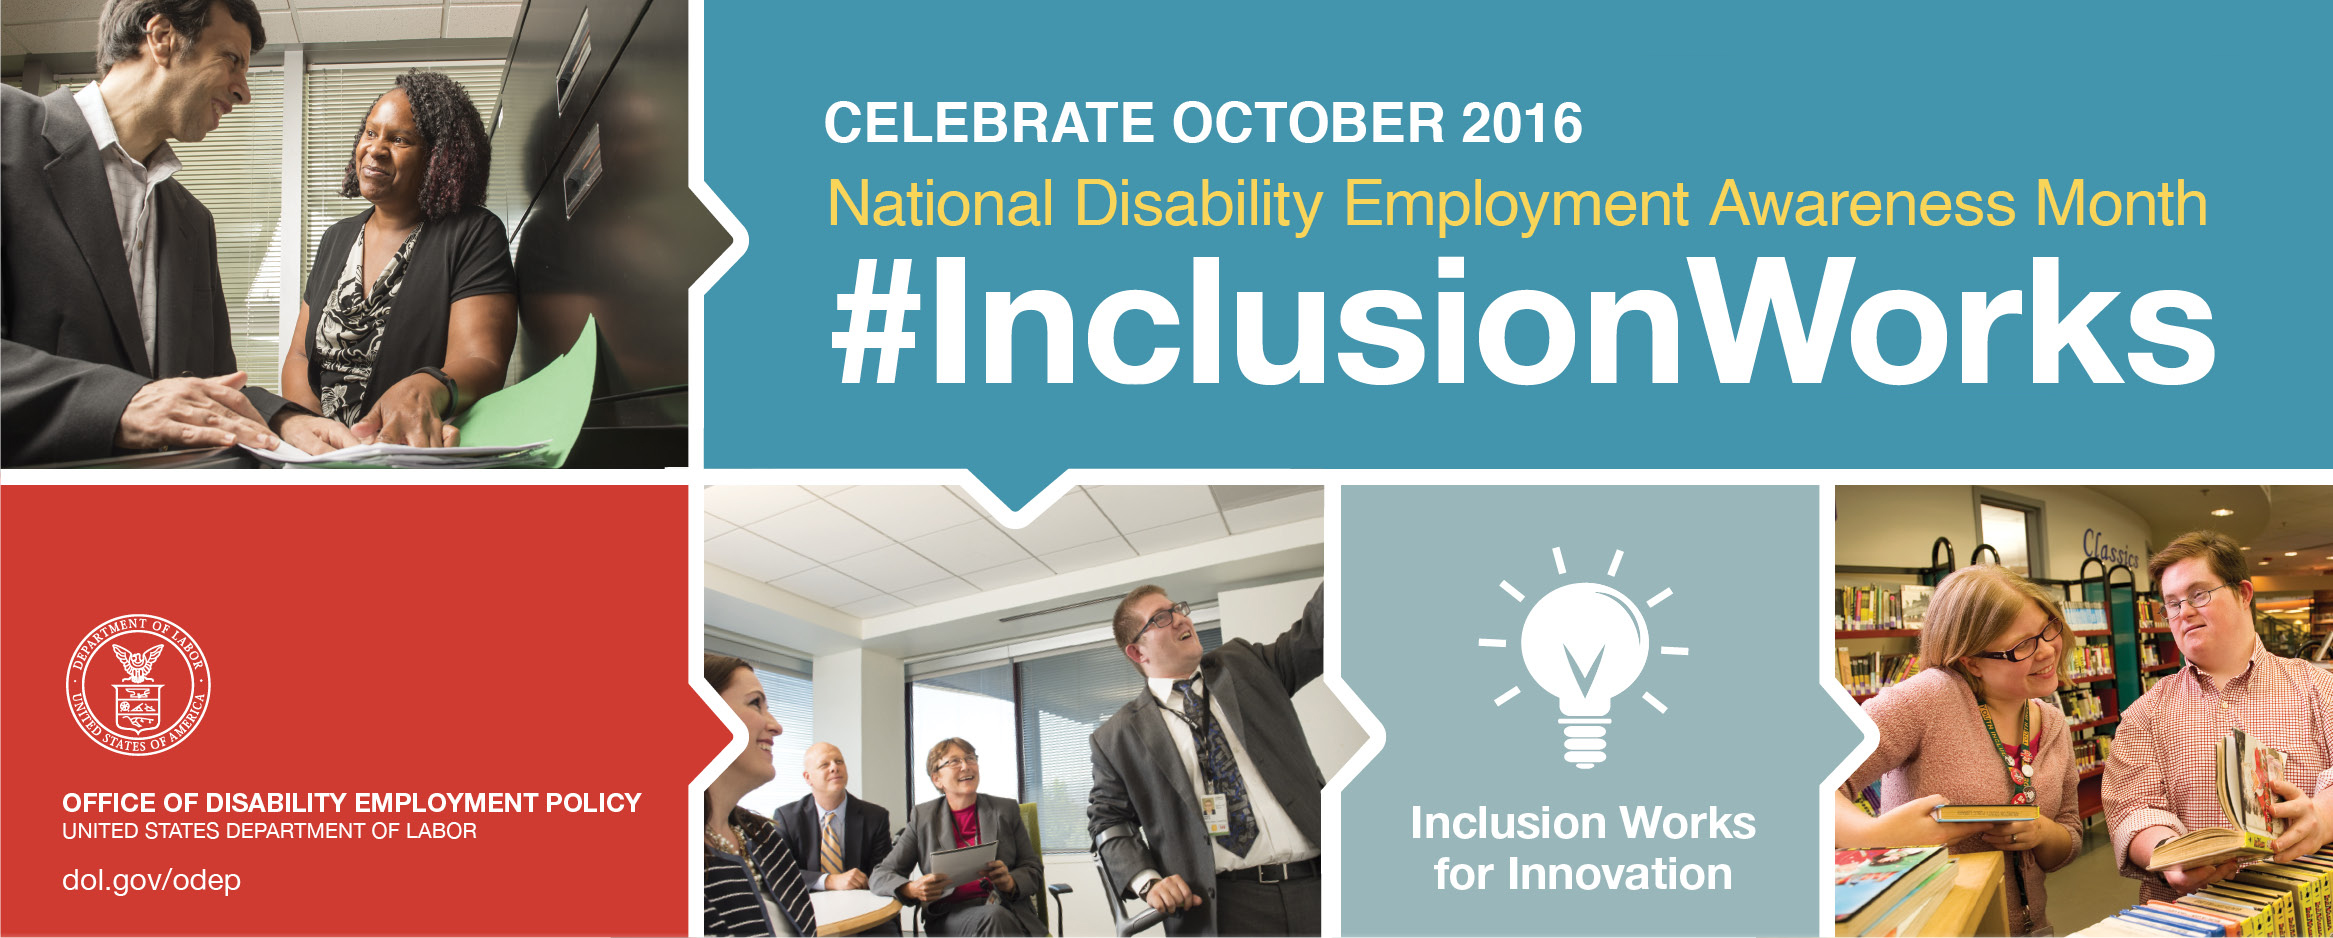 Celebrate National Disability Employment Awareness Month October 2106, #InclusionWorks